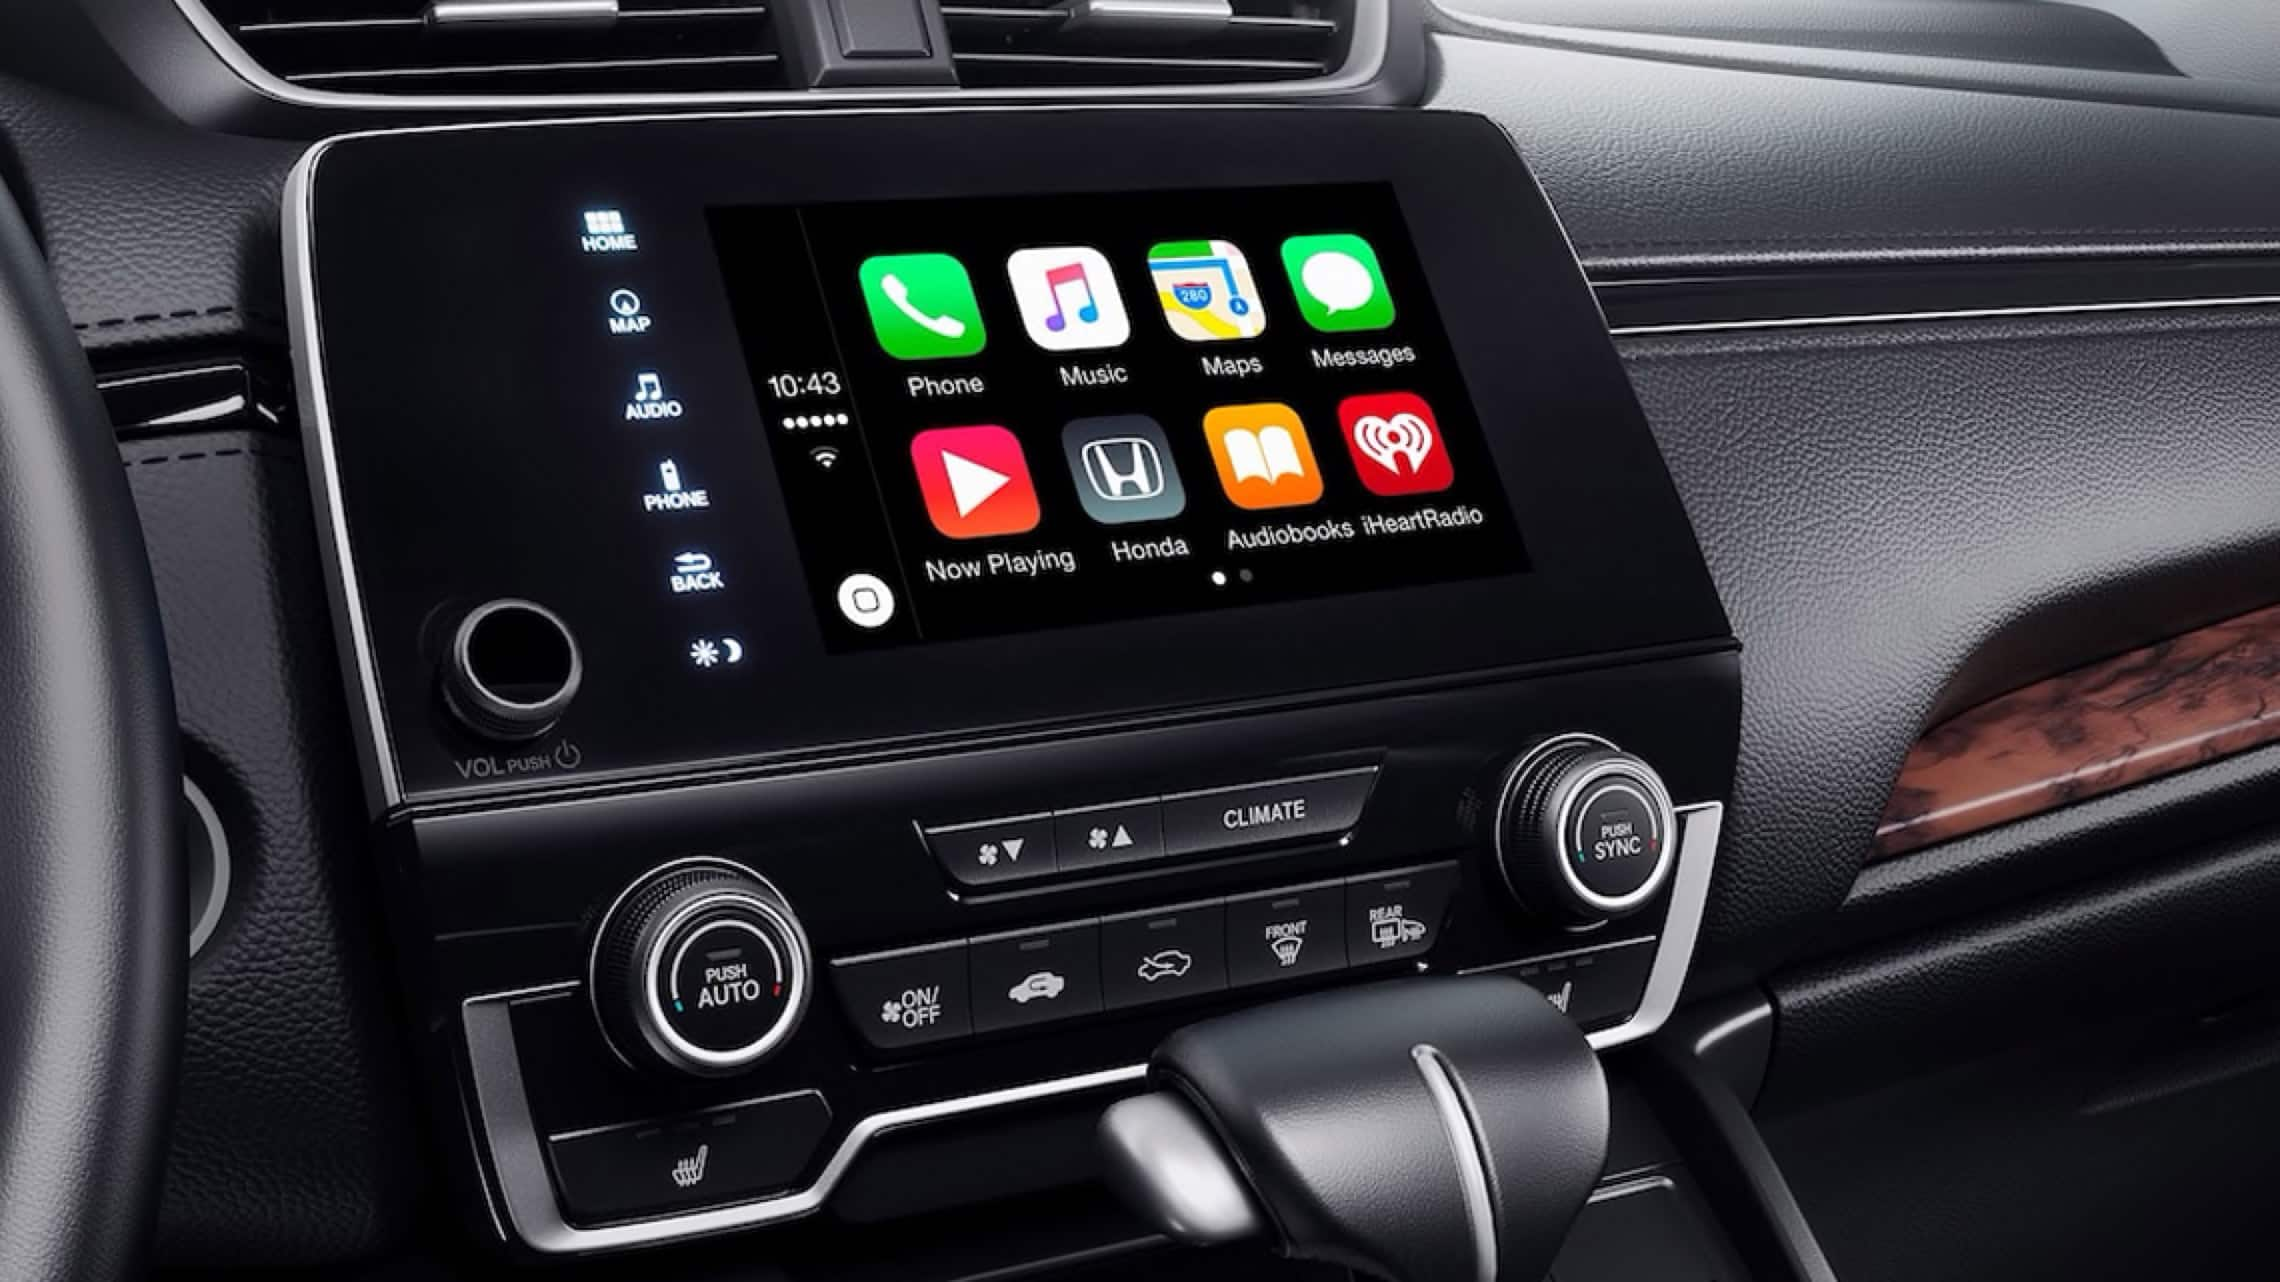 Sistema de audio en pantalla táctil con menú de integración con Apple CarPlay® en la Honda CR-V 2019.